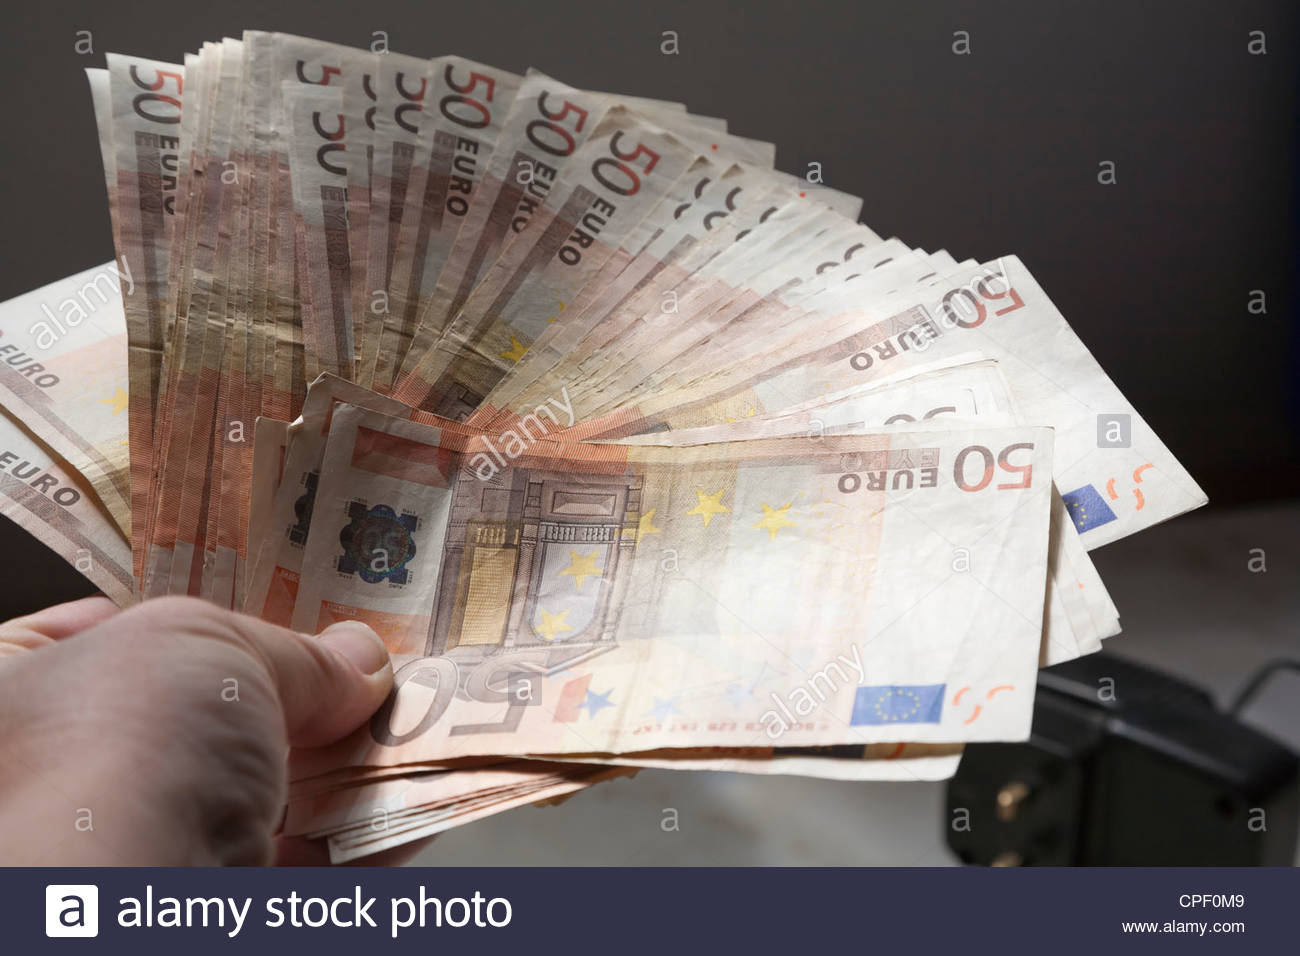 euro notes being handed over - Stock Image